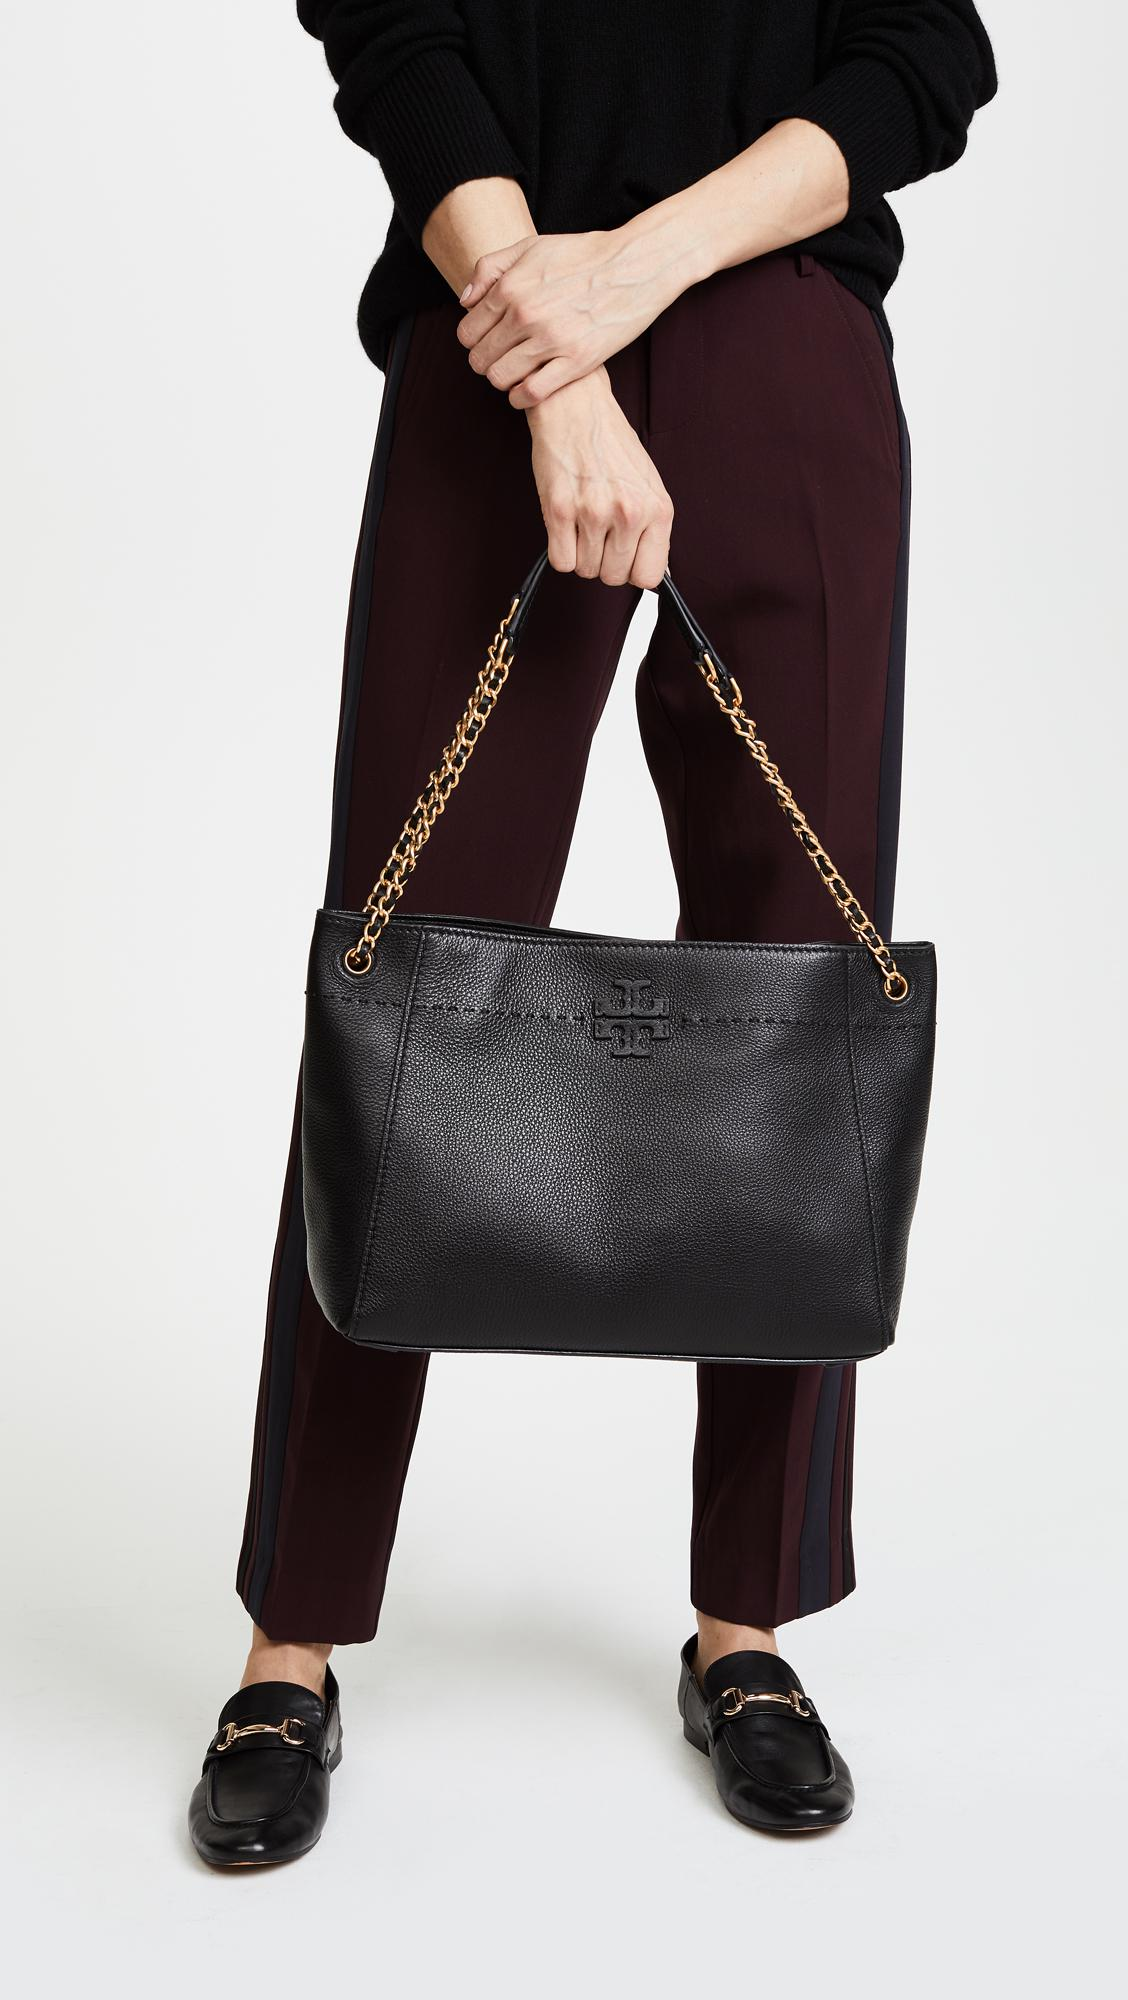 43538839dad9 Tory Burch Mcgraw Chain Shoulder Slouchy Tote in Black - Lyst